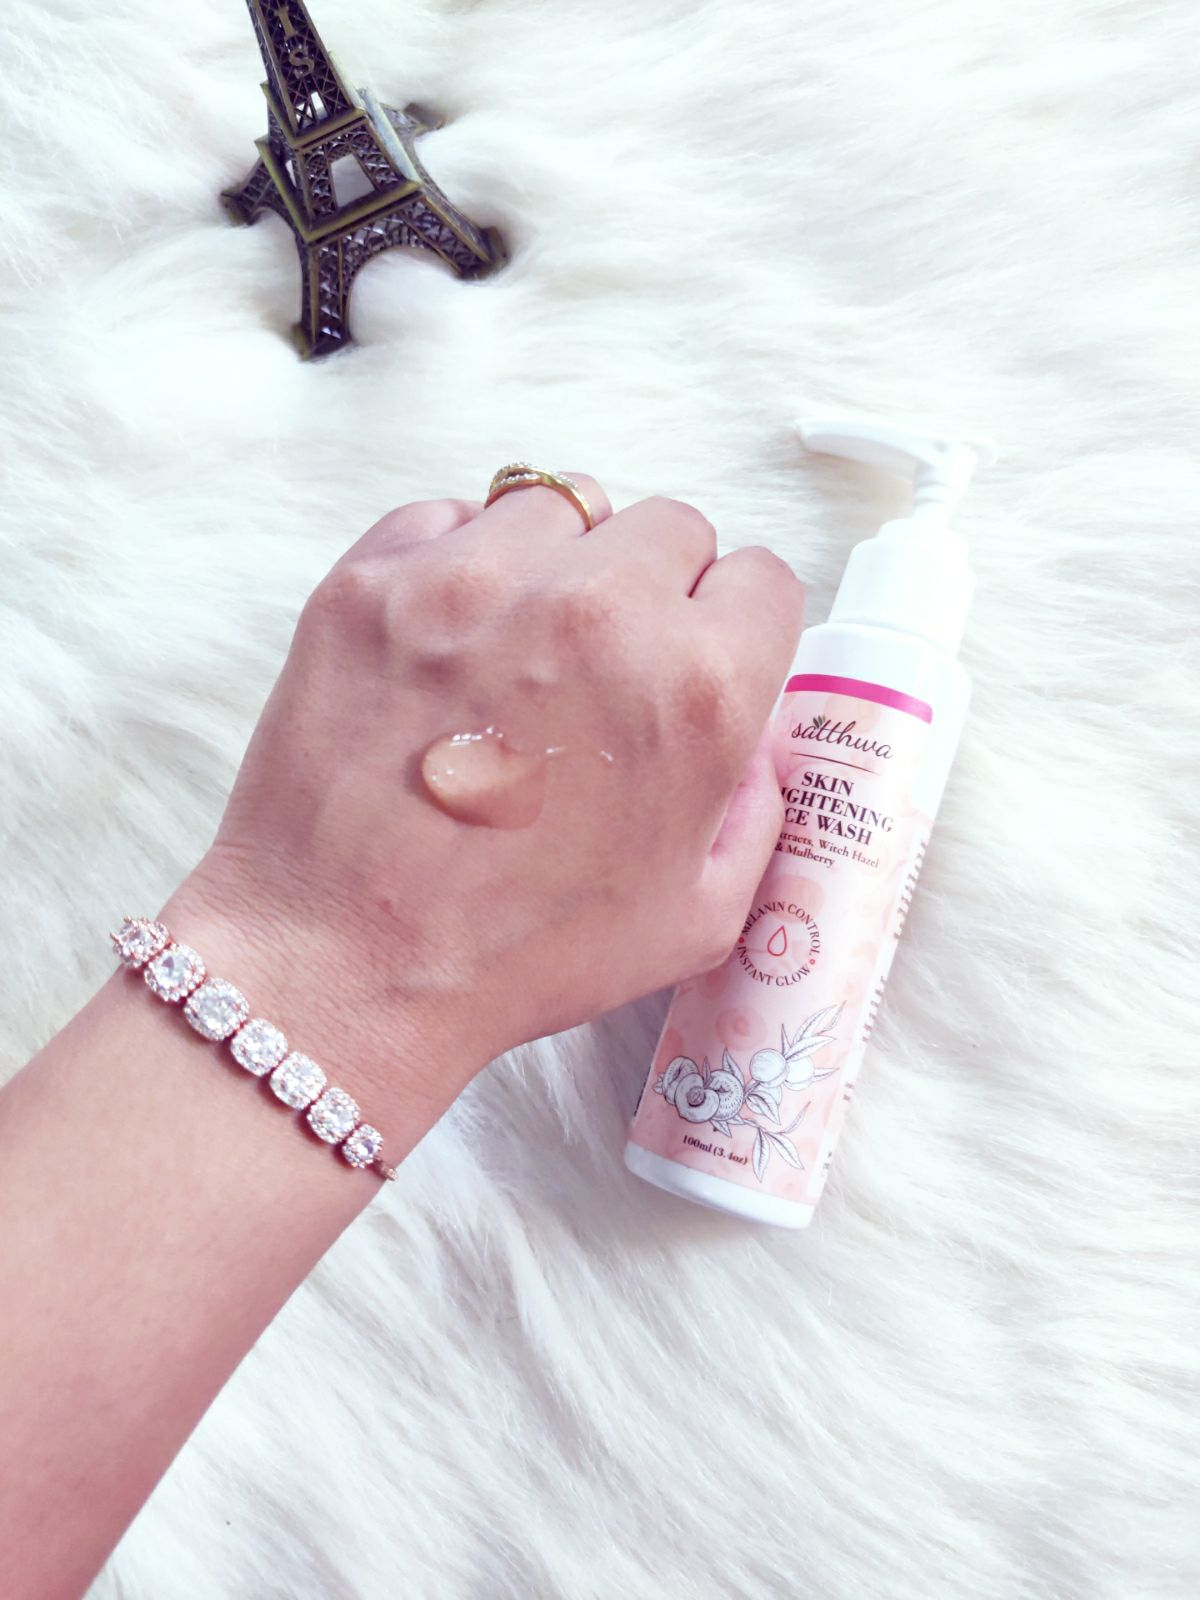 Satthwa skin brightening face wash review